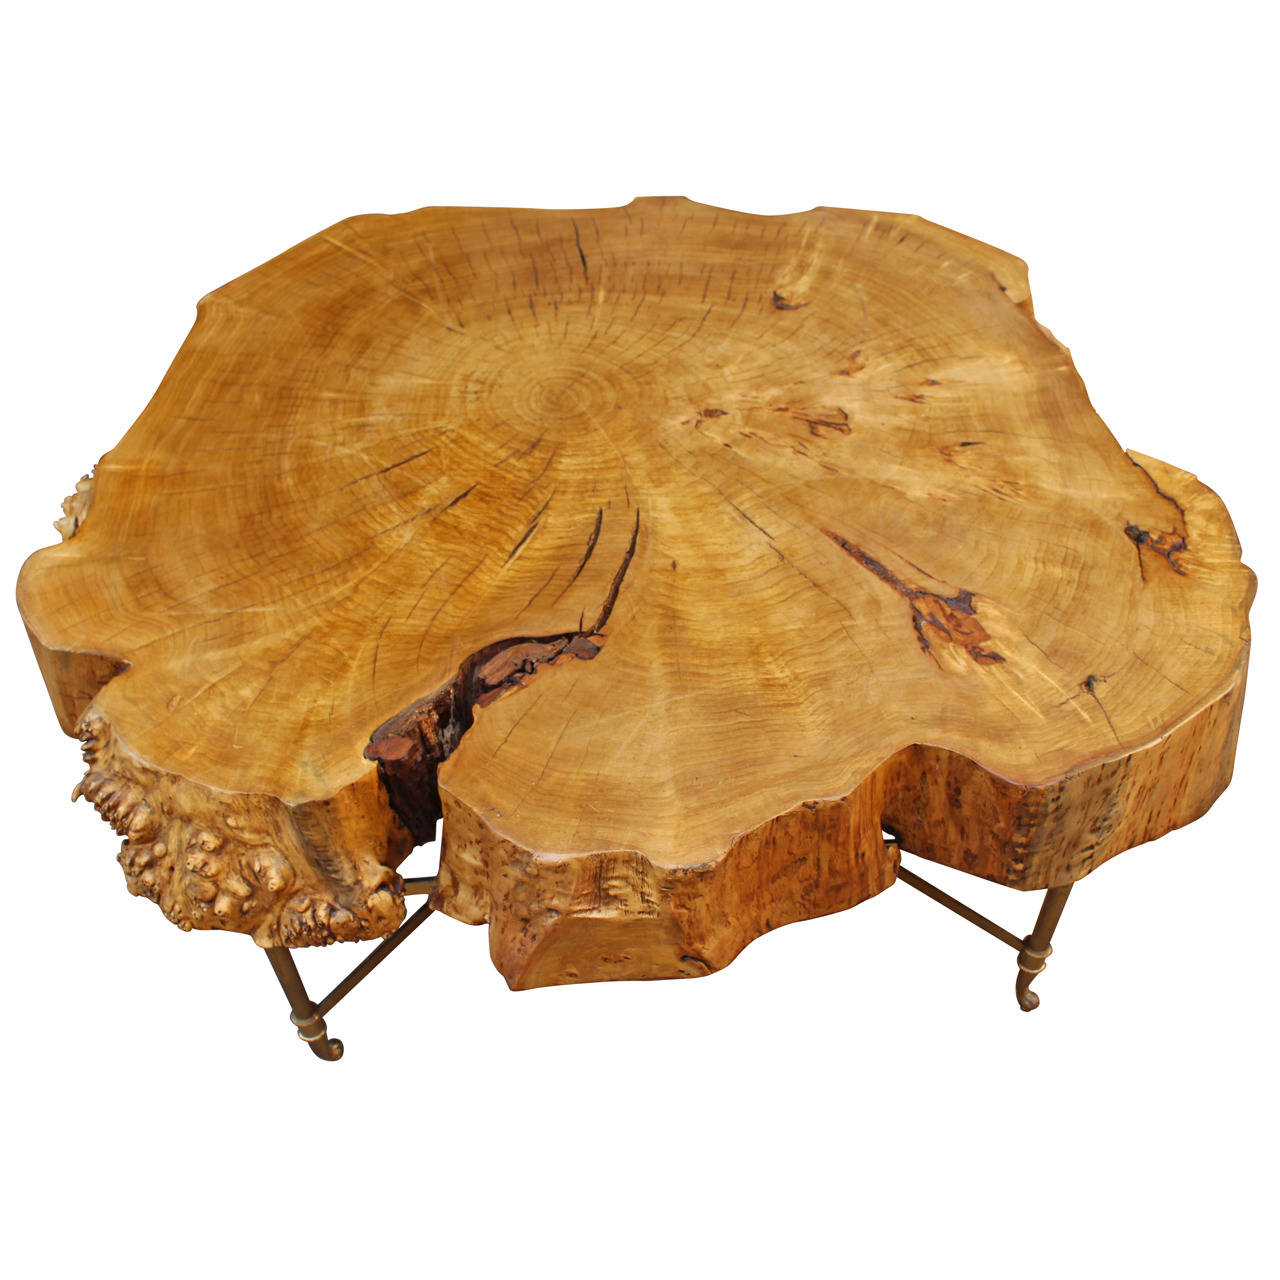 Table Basse Ronde Bois Massif 7 Idees De Decoration